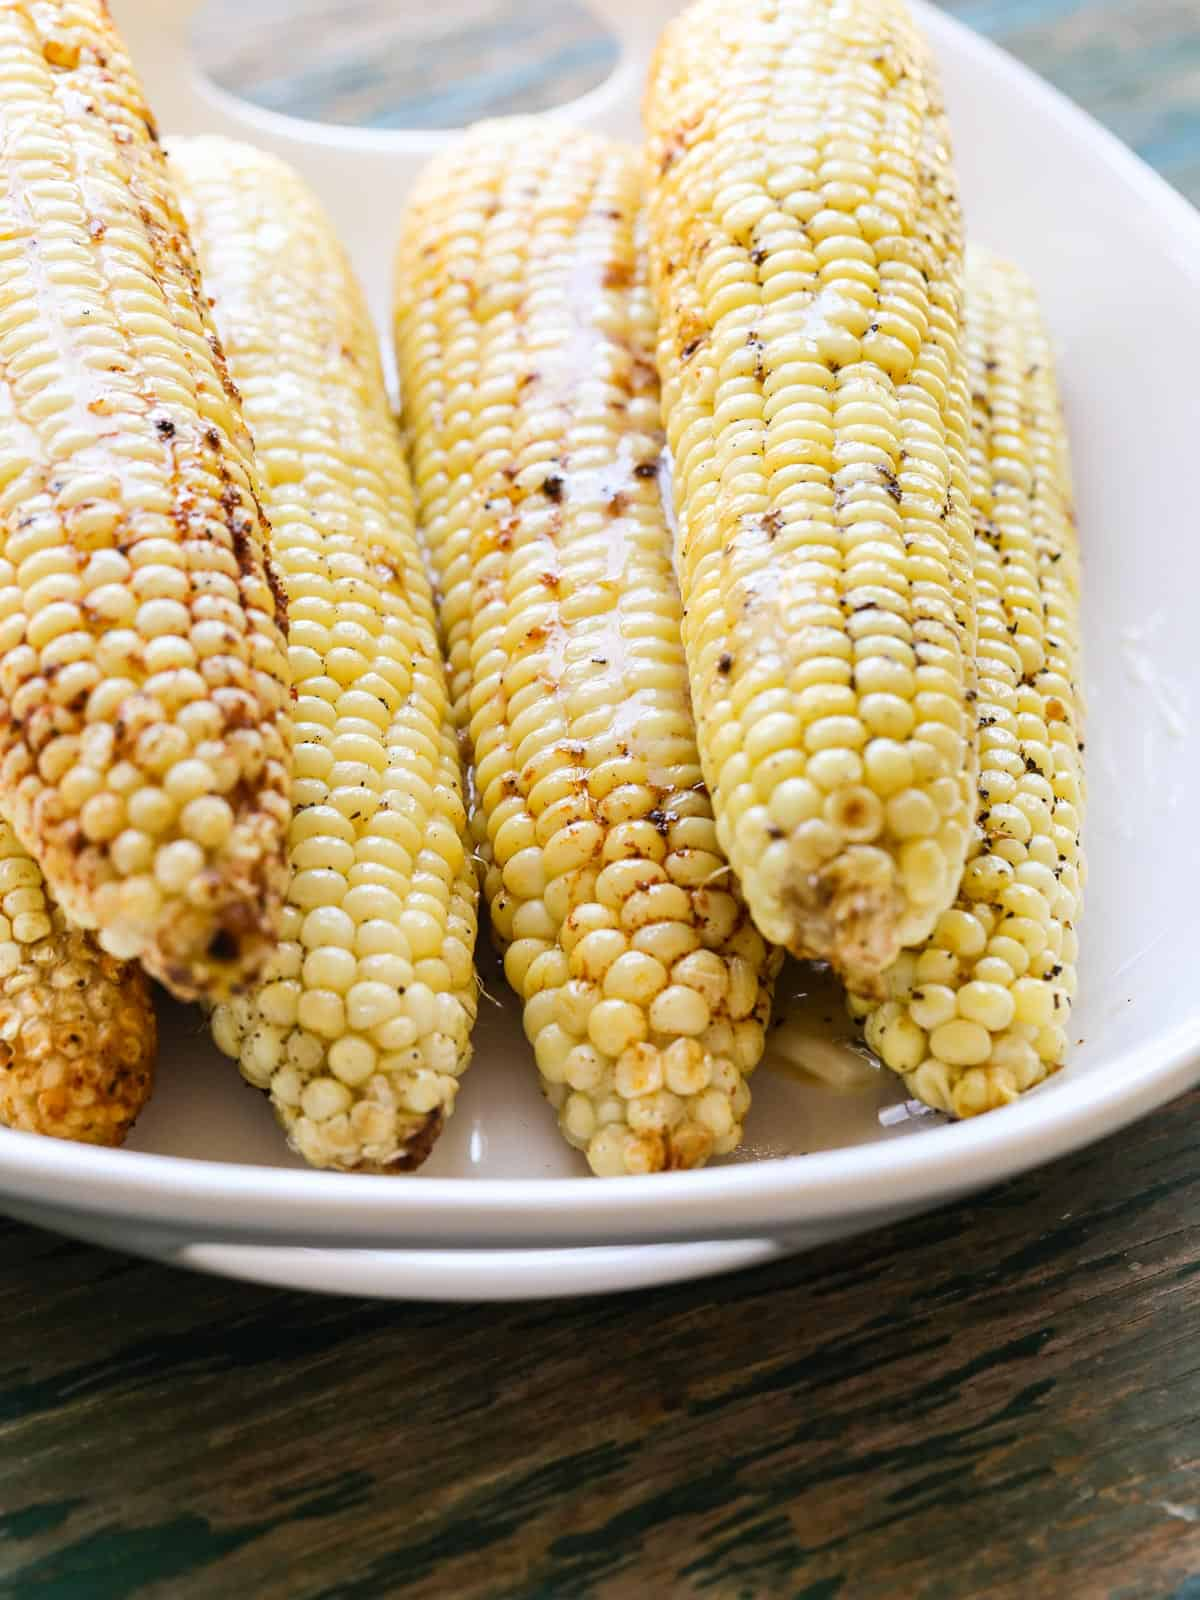 A white oval platter with grilled corn and melted butter on top.